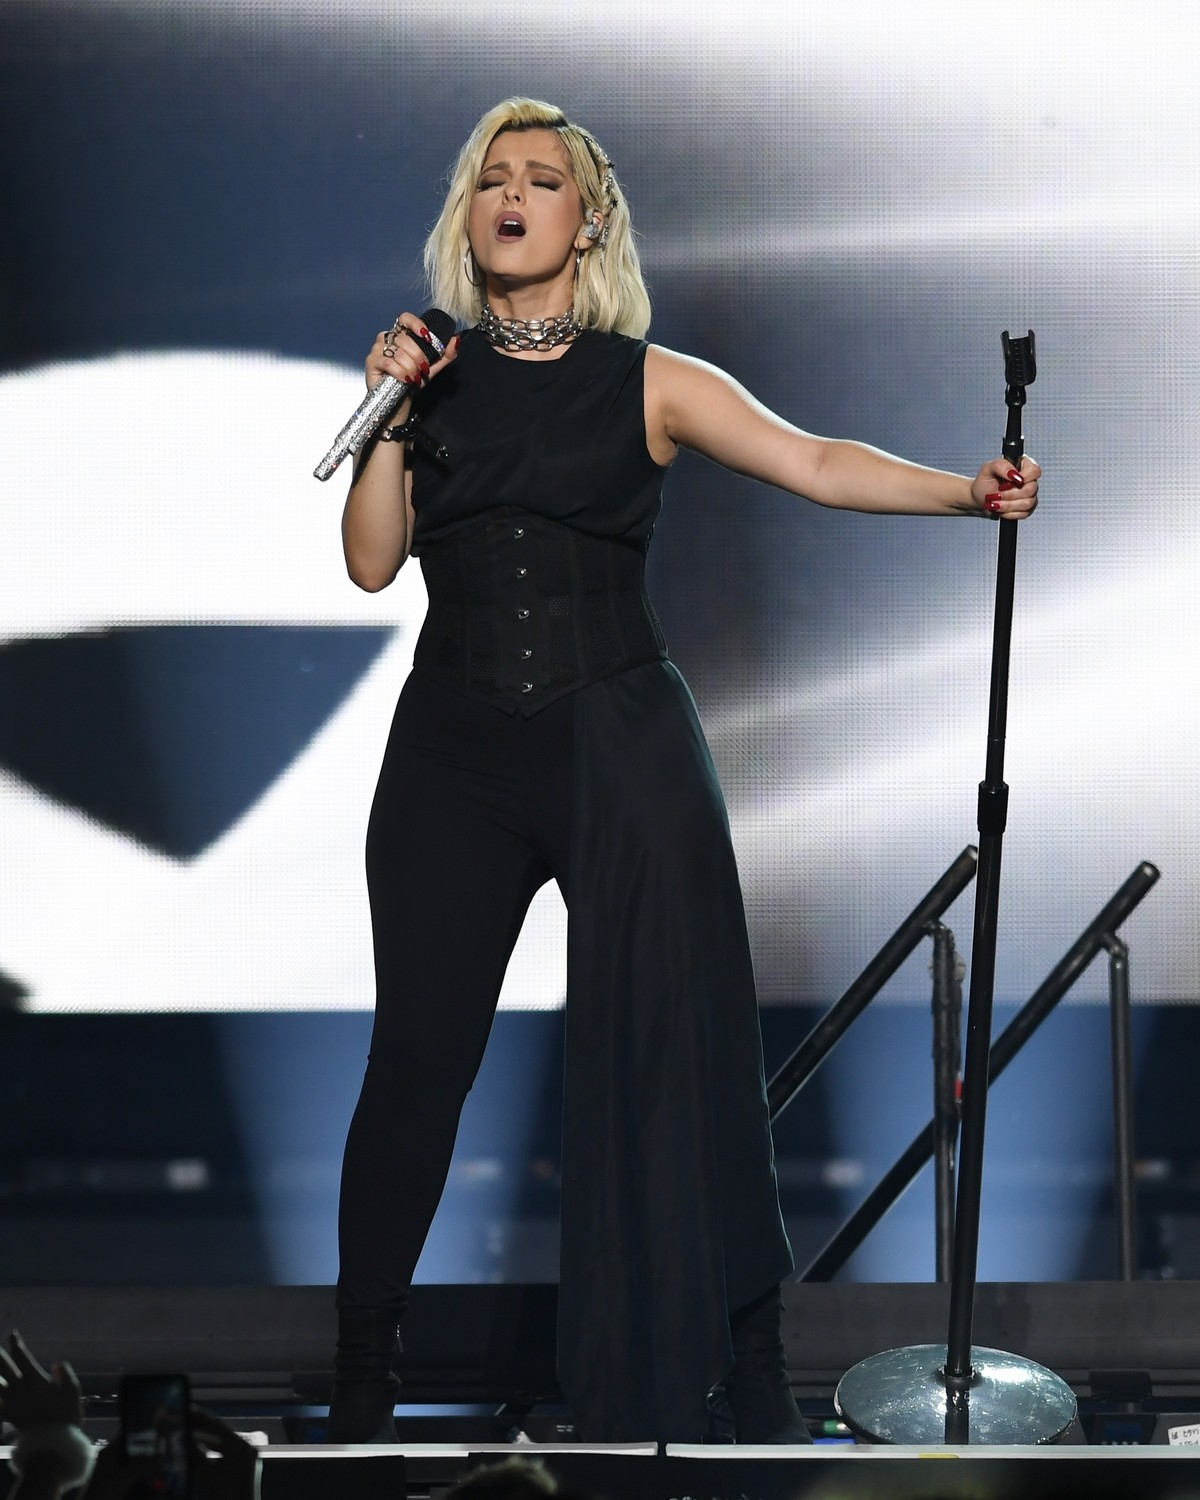 Bebe Rexha performs at the BB&T Center in Sunrise 2019/11/15 17